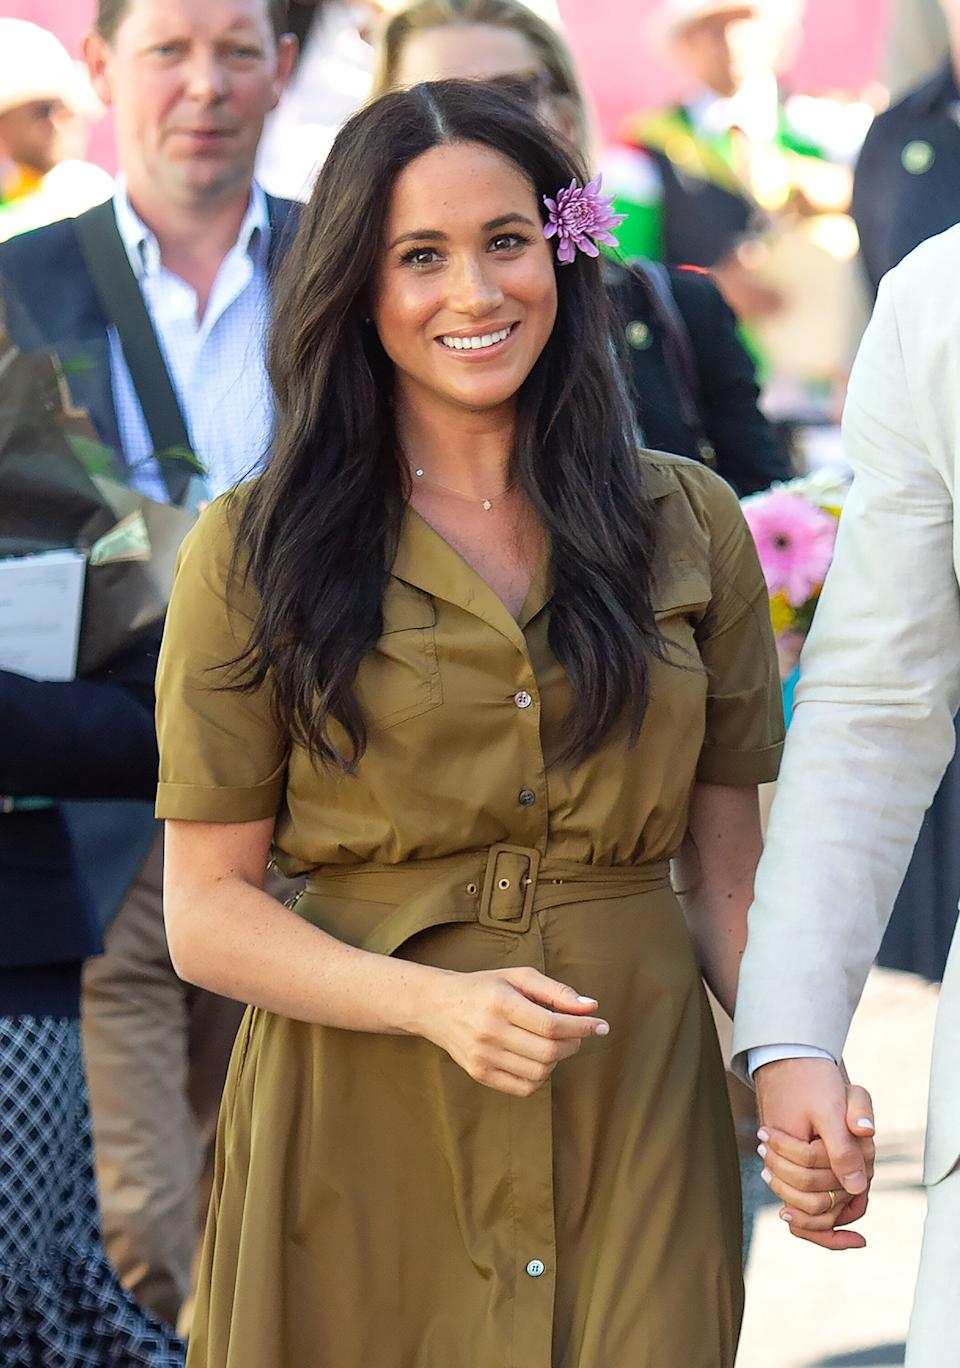 Meghan Markle in South Africa in 2018 (Photo: Pool/Samir Hussein via Getty Images)